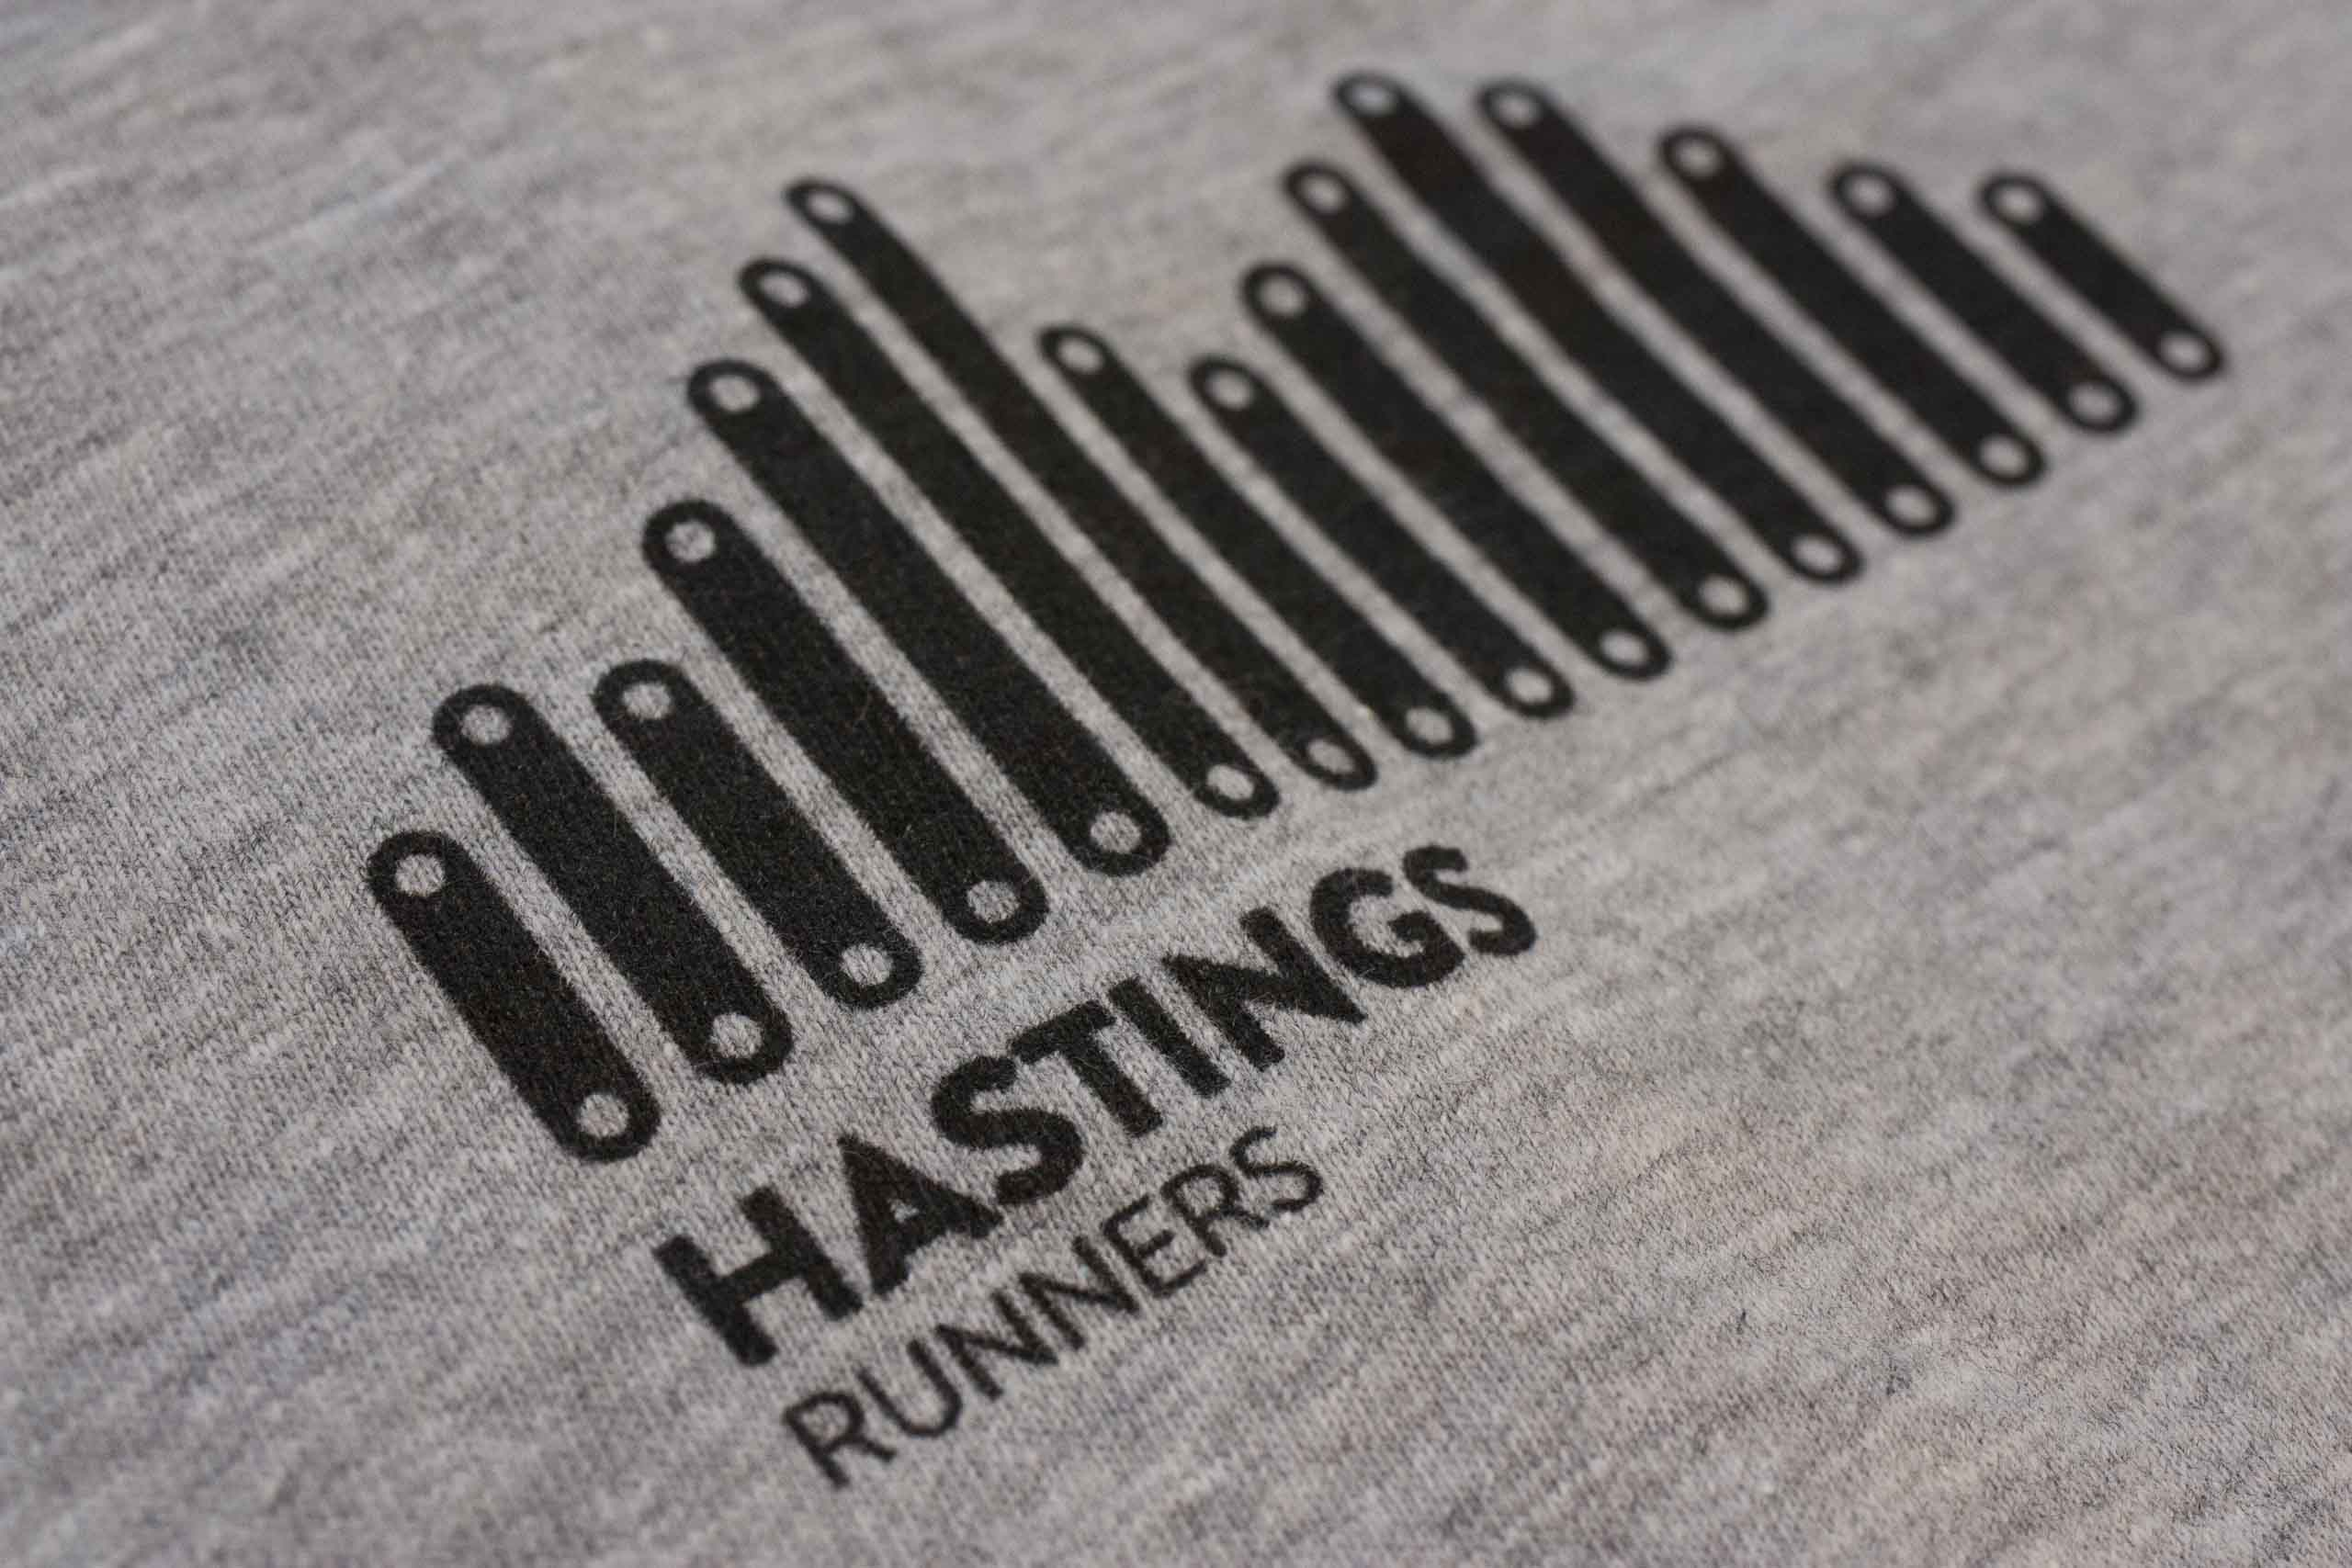 Macro shot of the Hastings Runners logo printed on the shirt showing the intricate detailing — by Yagnyuk.